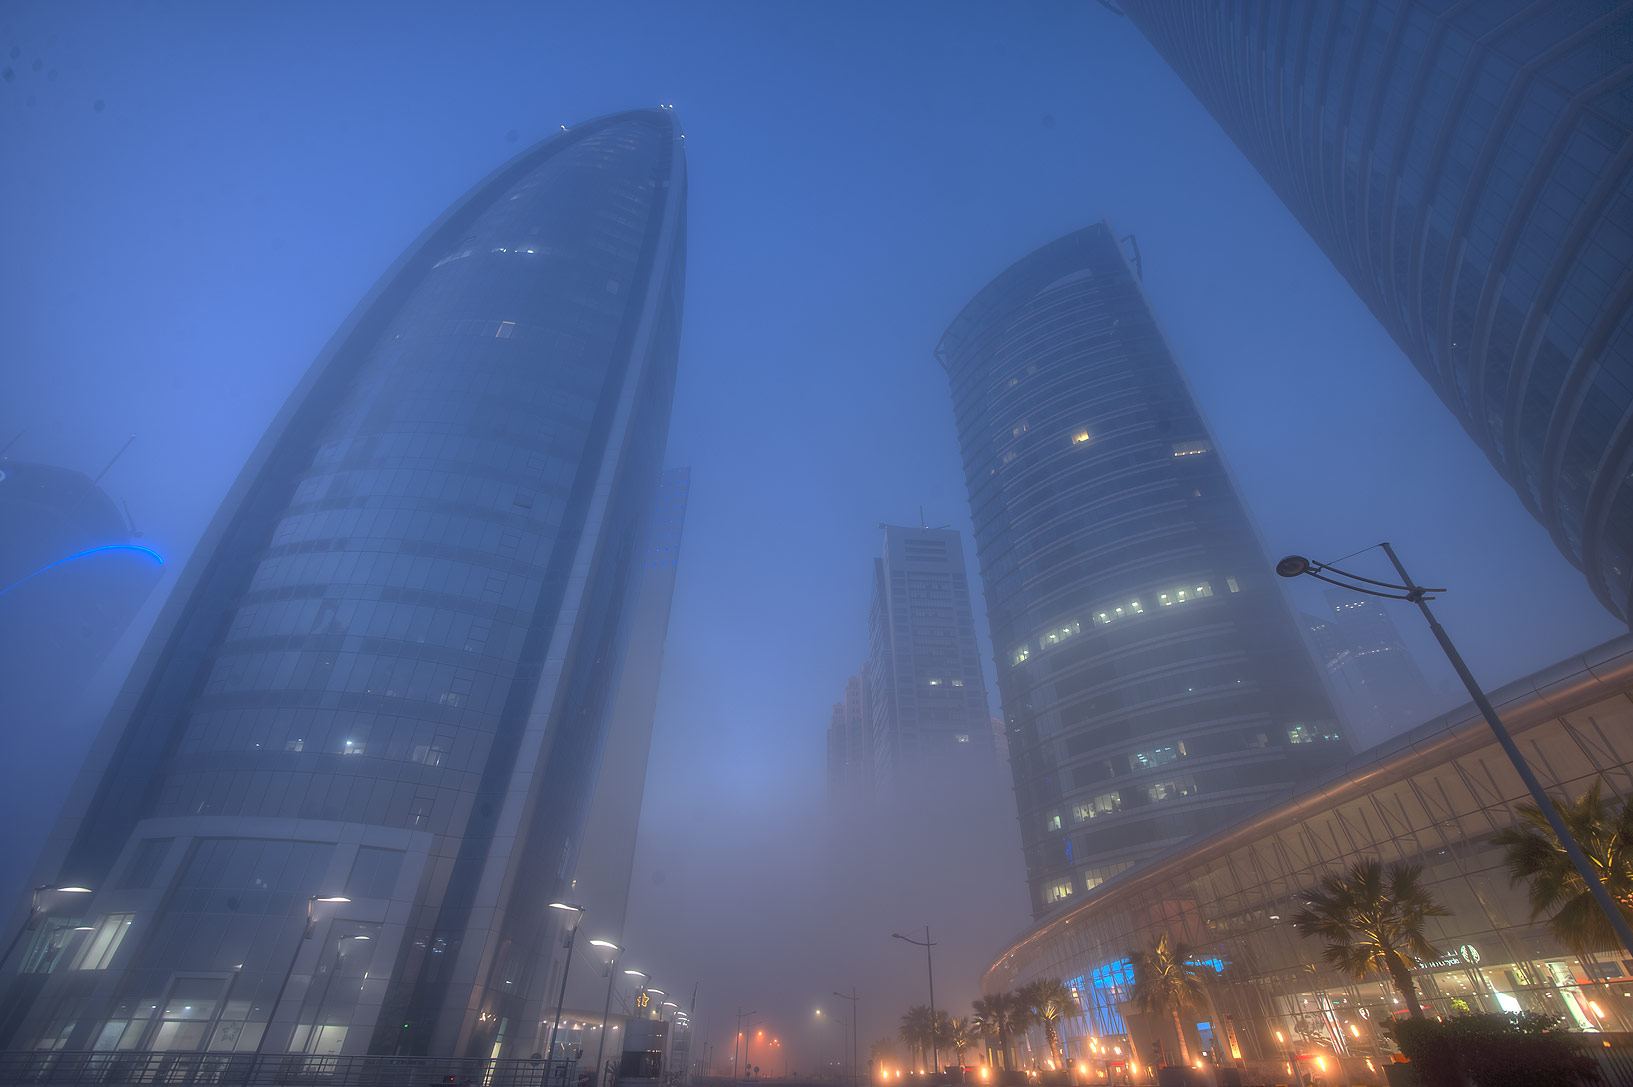 Woqod and Al Fardan towers in West Bay in fog. Doha, Qatar